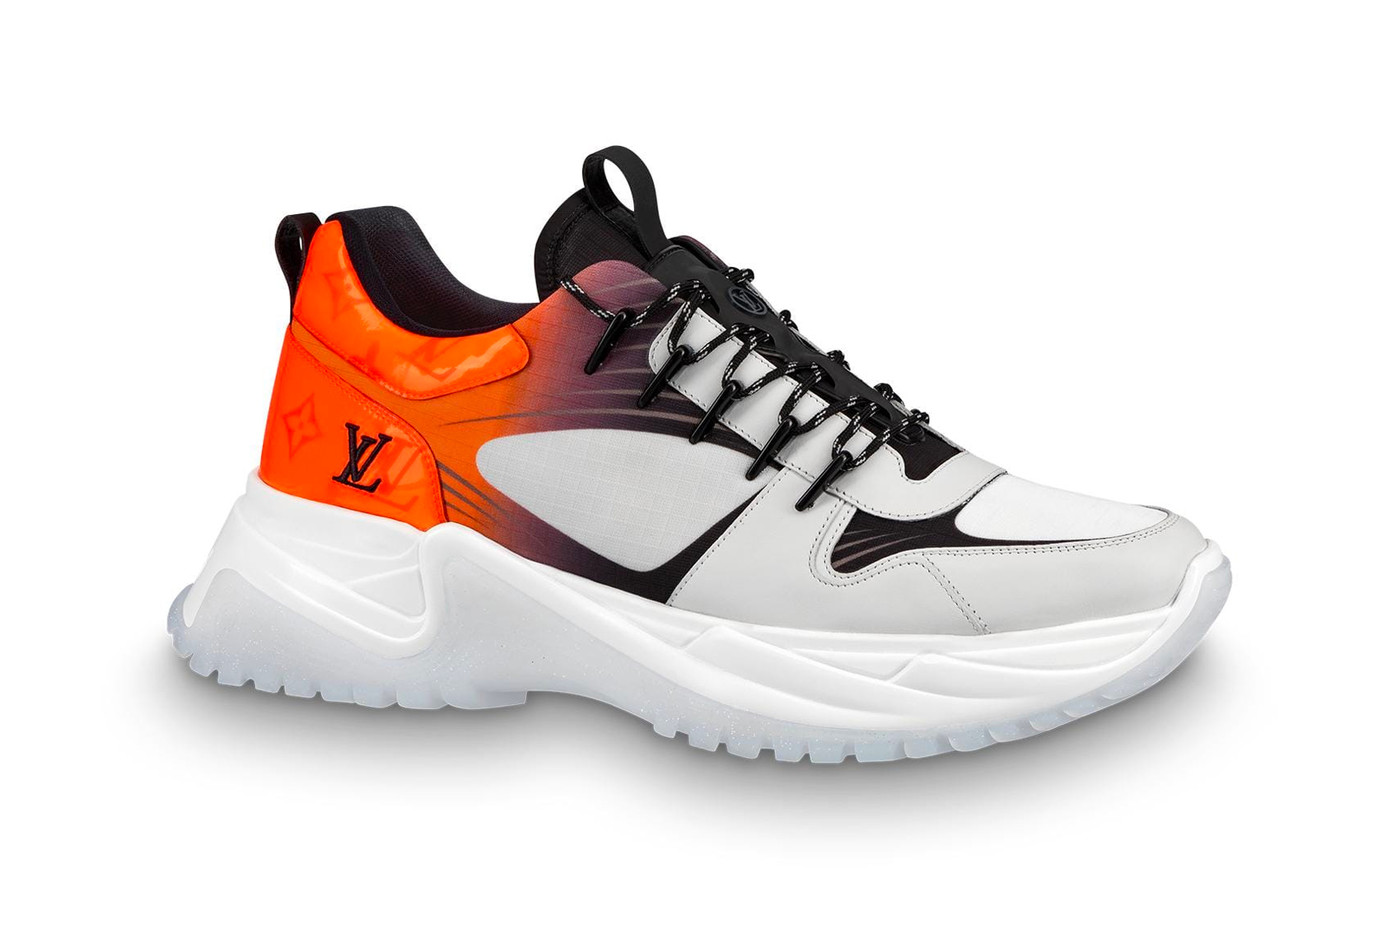 96d152e40 Pick up the new Louis Vuitton Run Away Pulse Sneaker right now for a retail  price set at $1,230 USD, available at LV flagship locations and online.